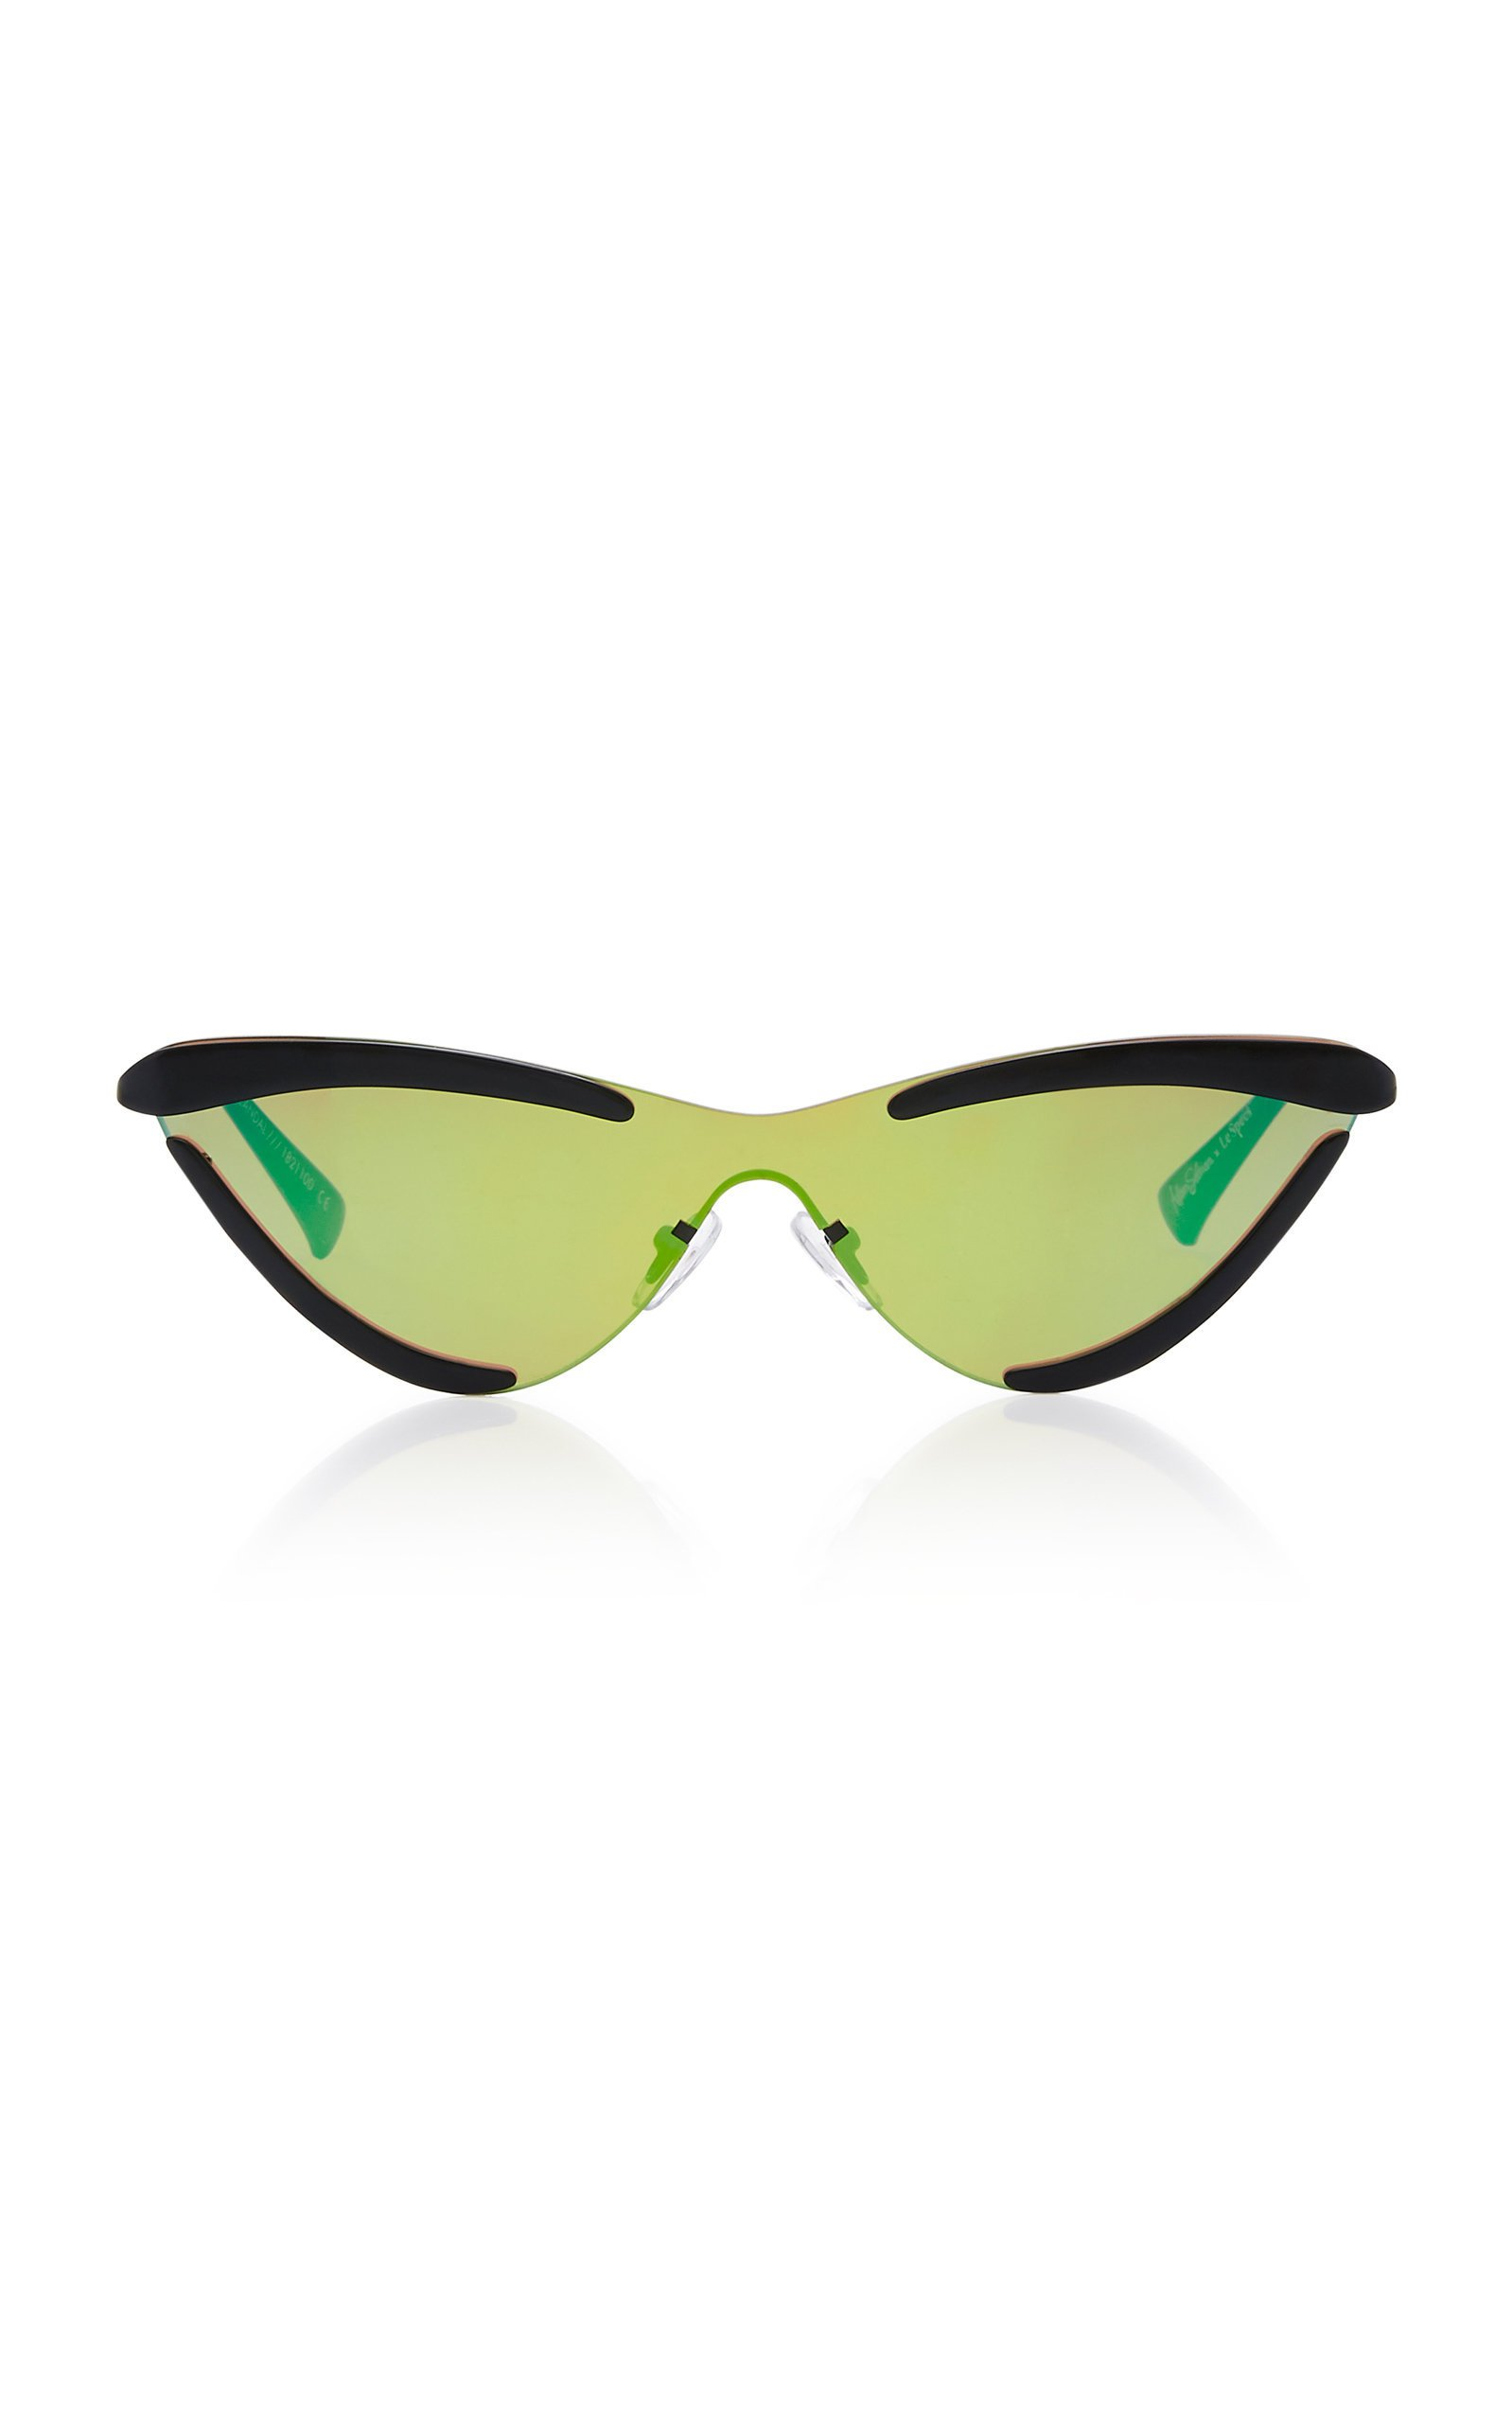 The Scandal Cat-Eye Sunglasses by Adam Selman X Le Specs | Moda Operandi